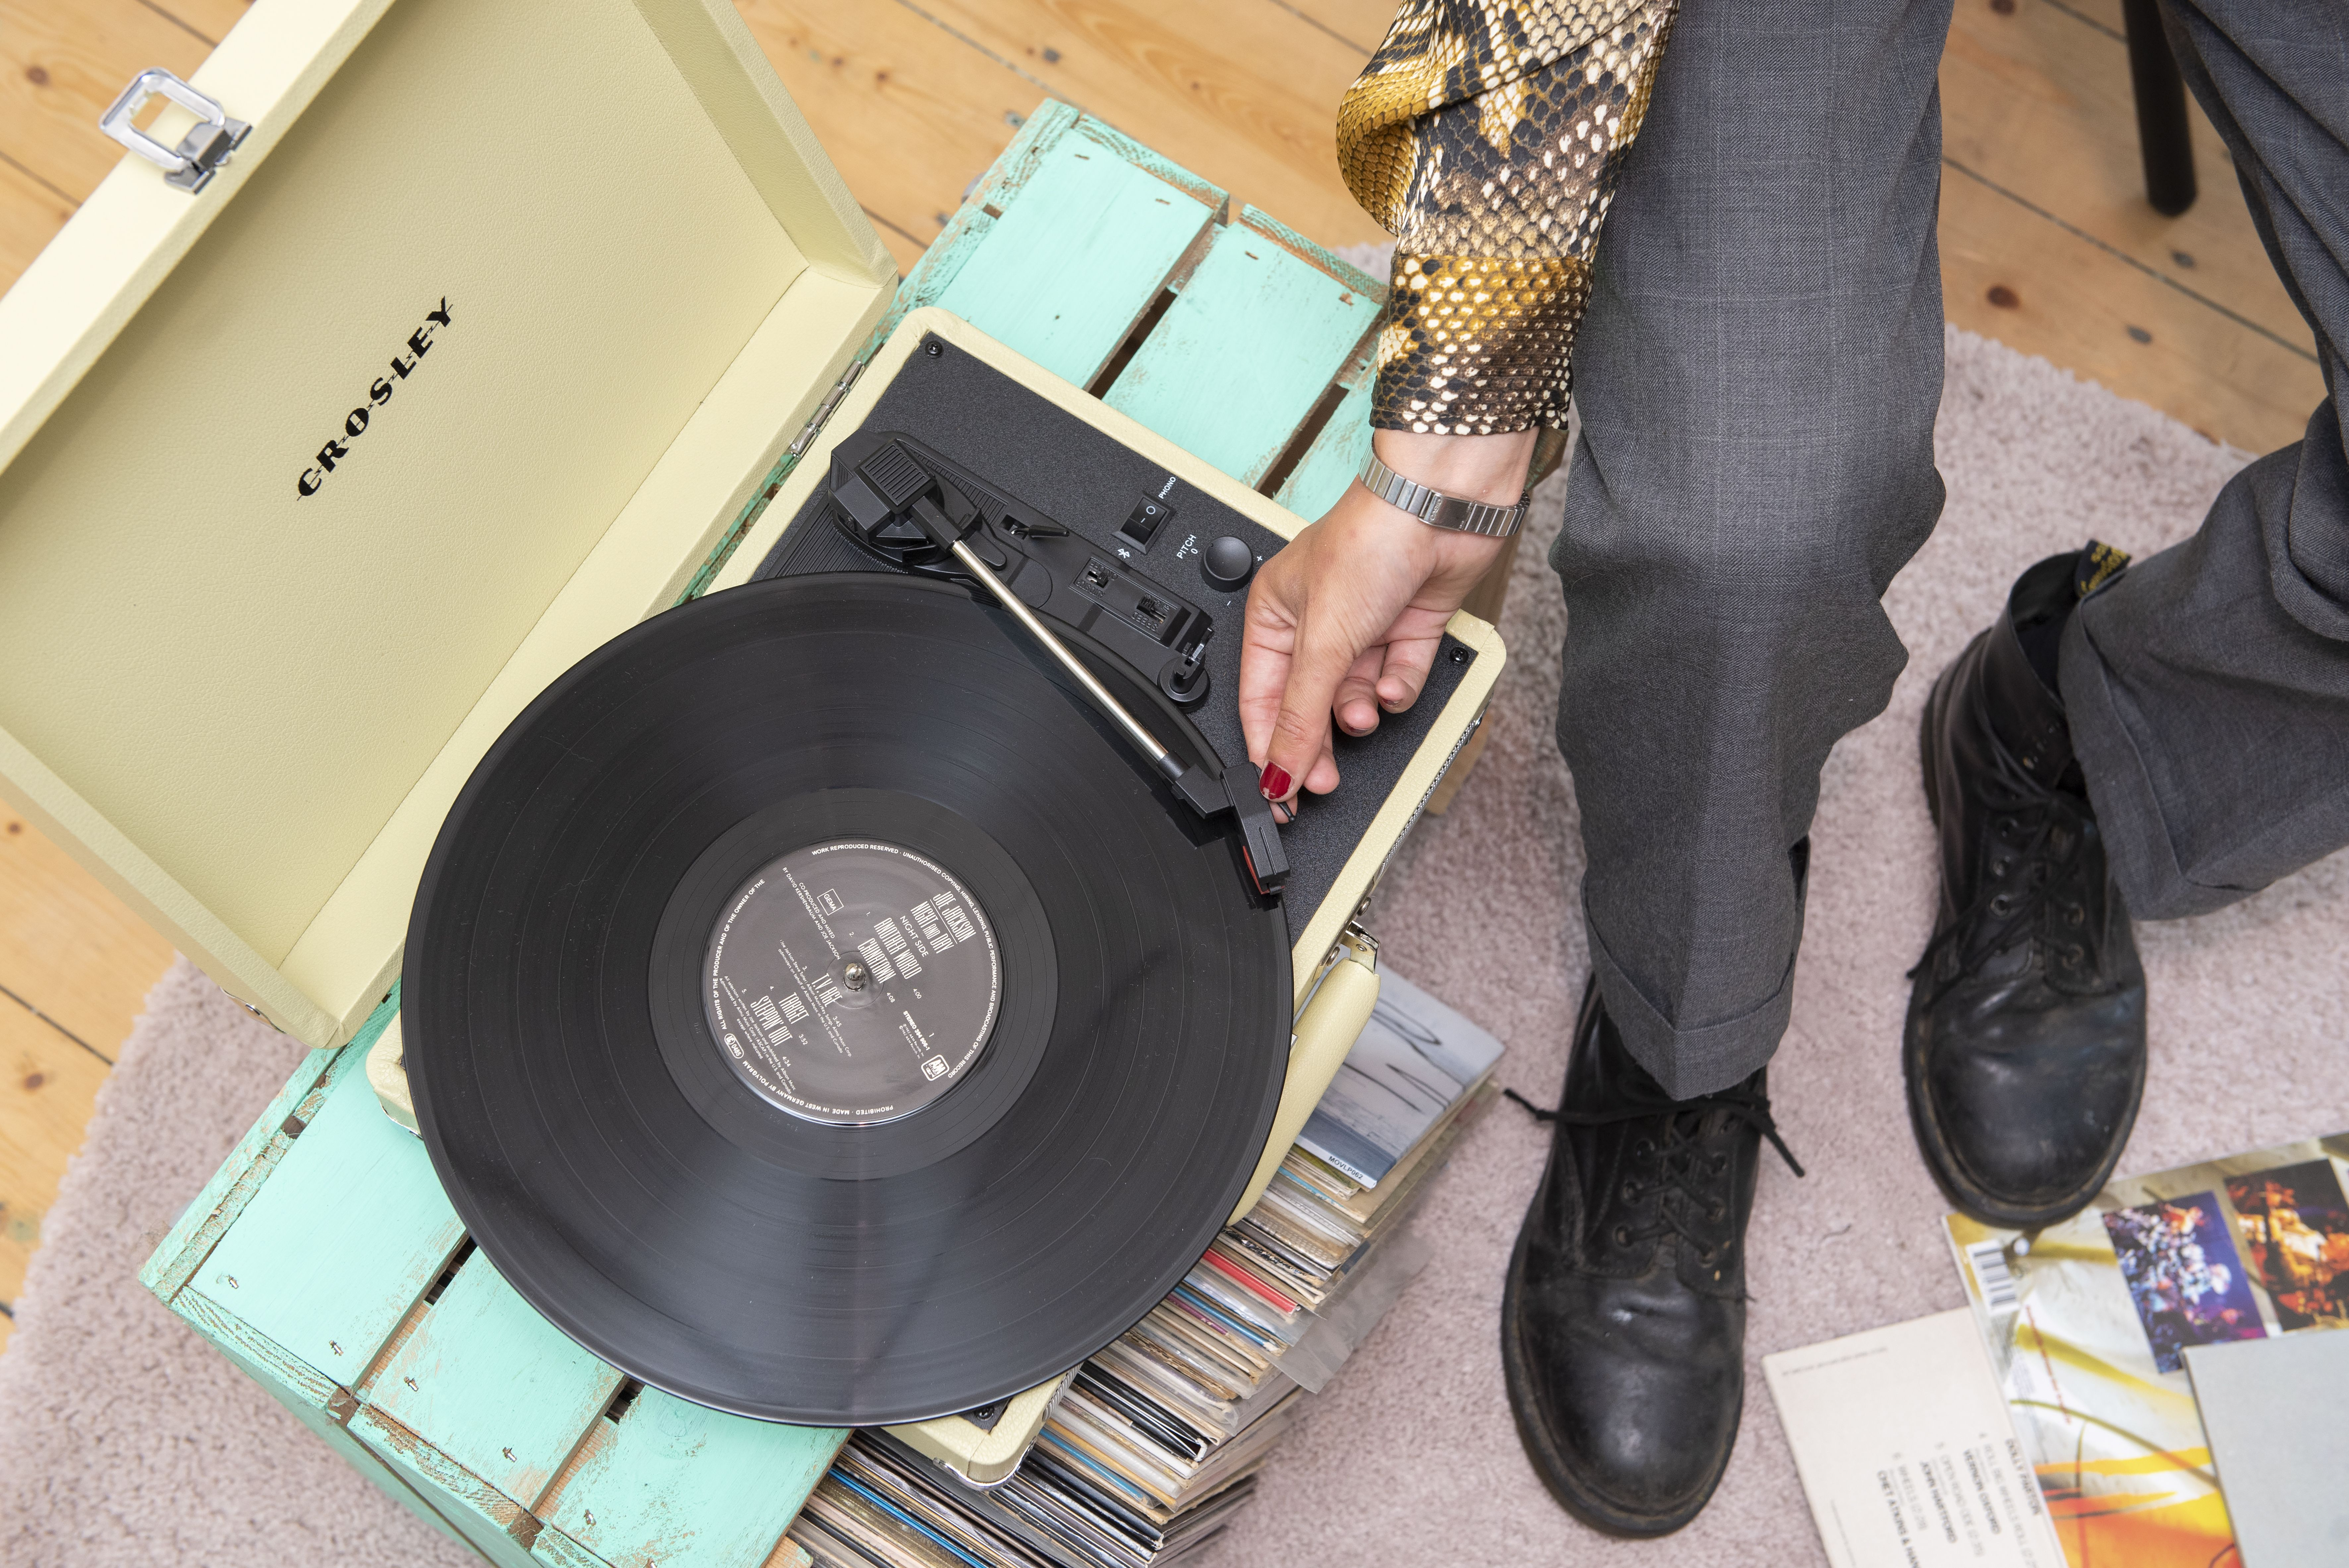 Cruiser Record Player Fawn Record Player Bluetooth Record Player Crosley Cruiser